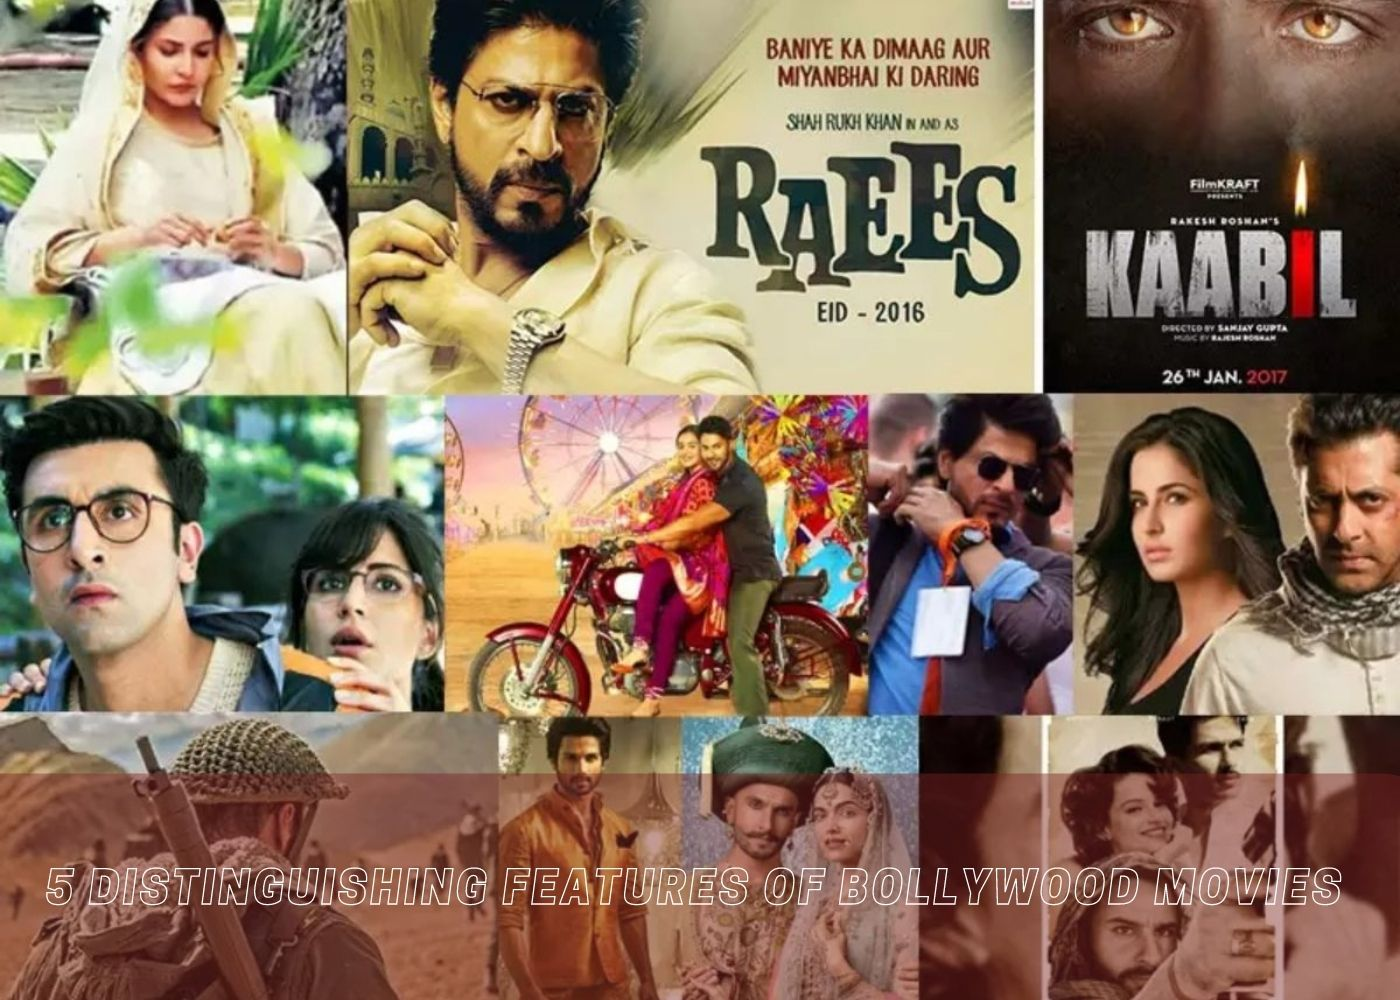 5 Distinguishing Features of Bollywood Movies